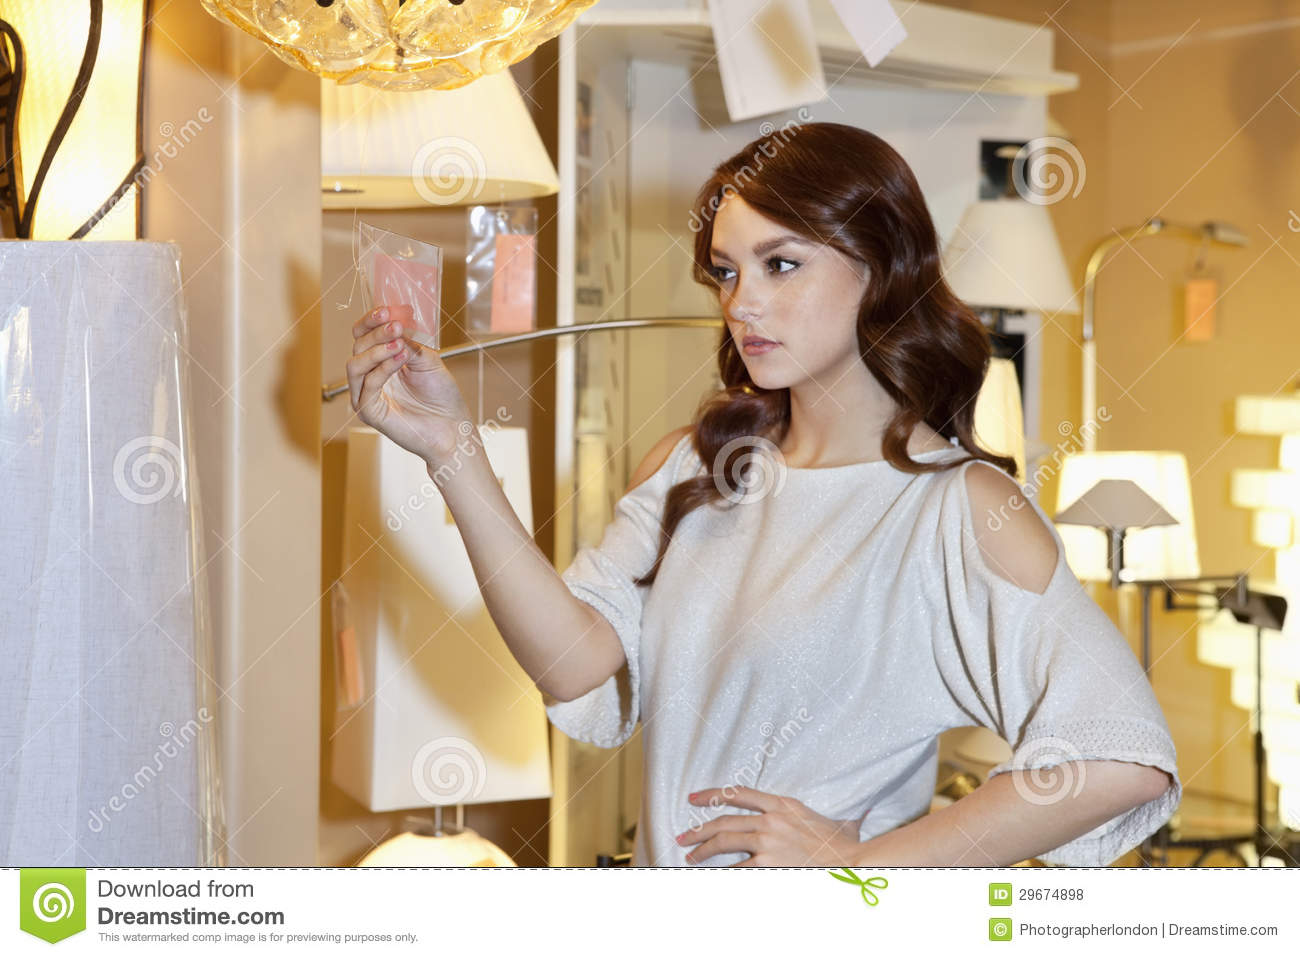 Beautiful Woman Looking At Price Tag Of Lighting Fixture